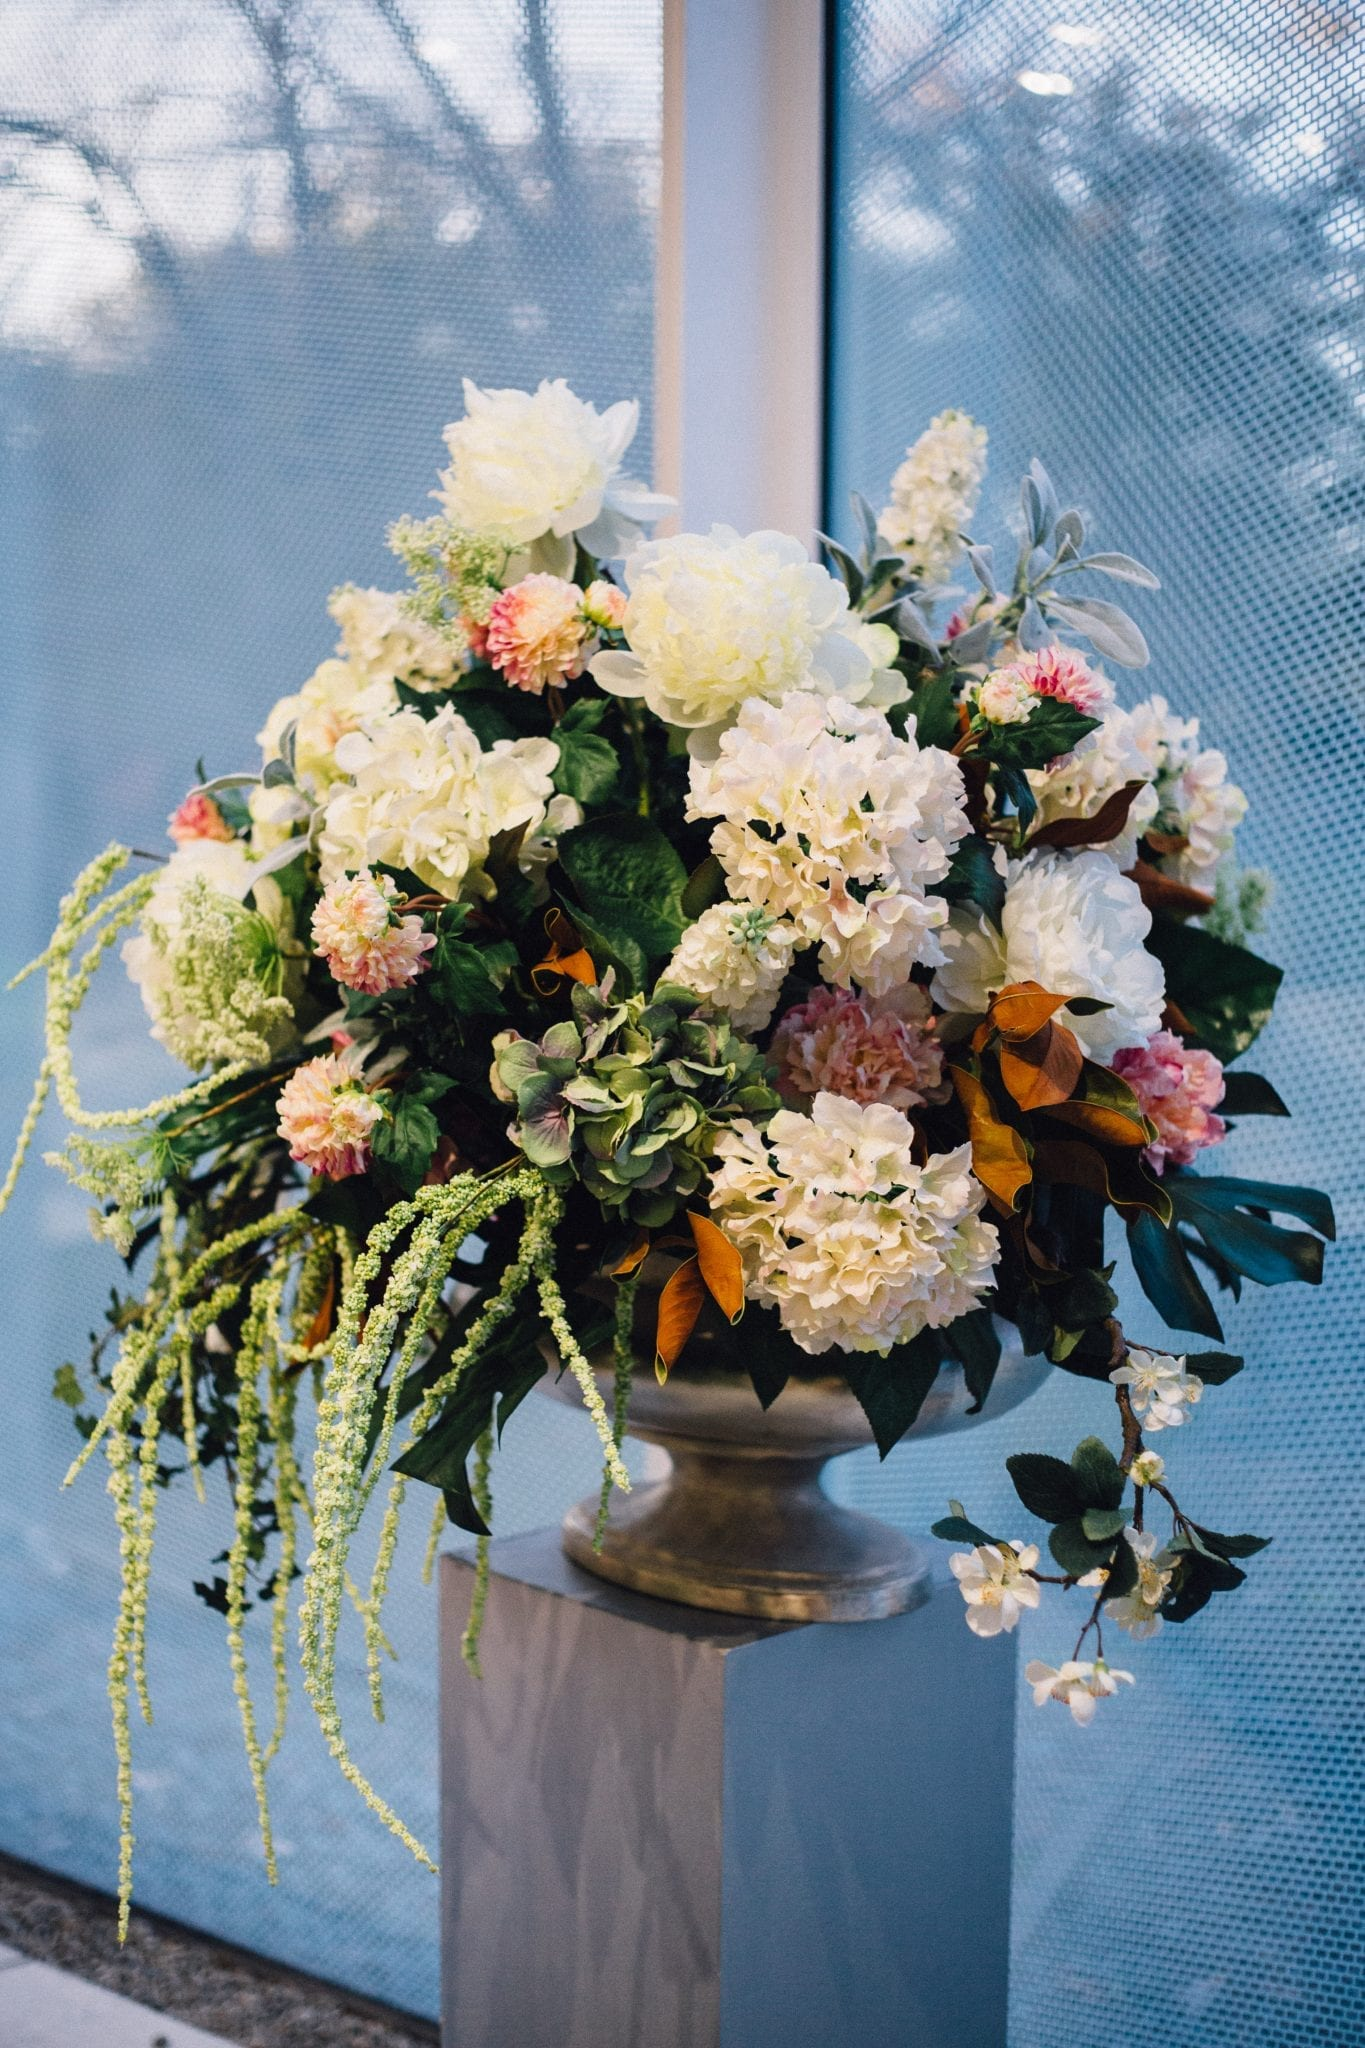 Kim Chan using Artificial Flowers for Wedding or Event in Christchurch